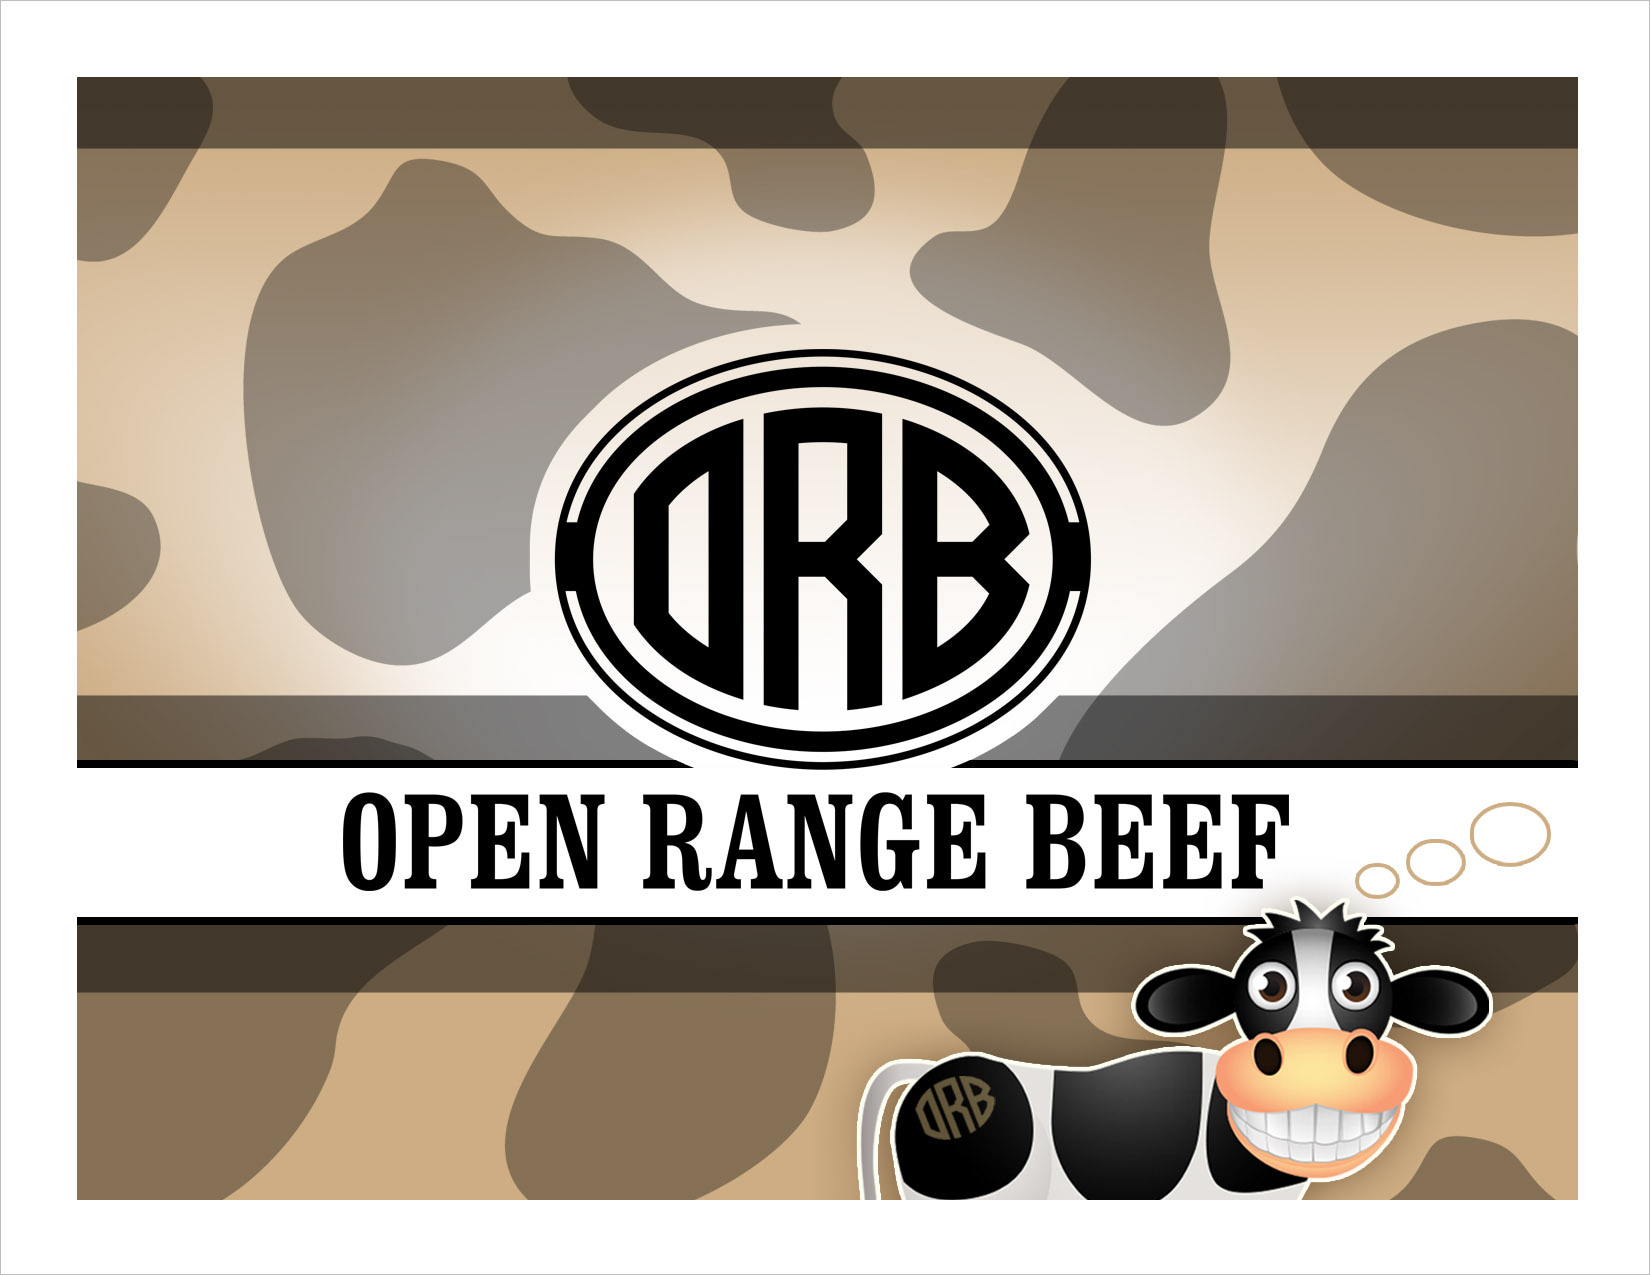 Open Range Beef Notecard Gordon, NE